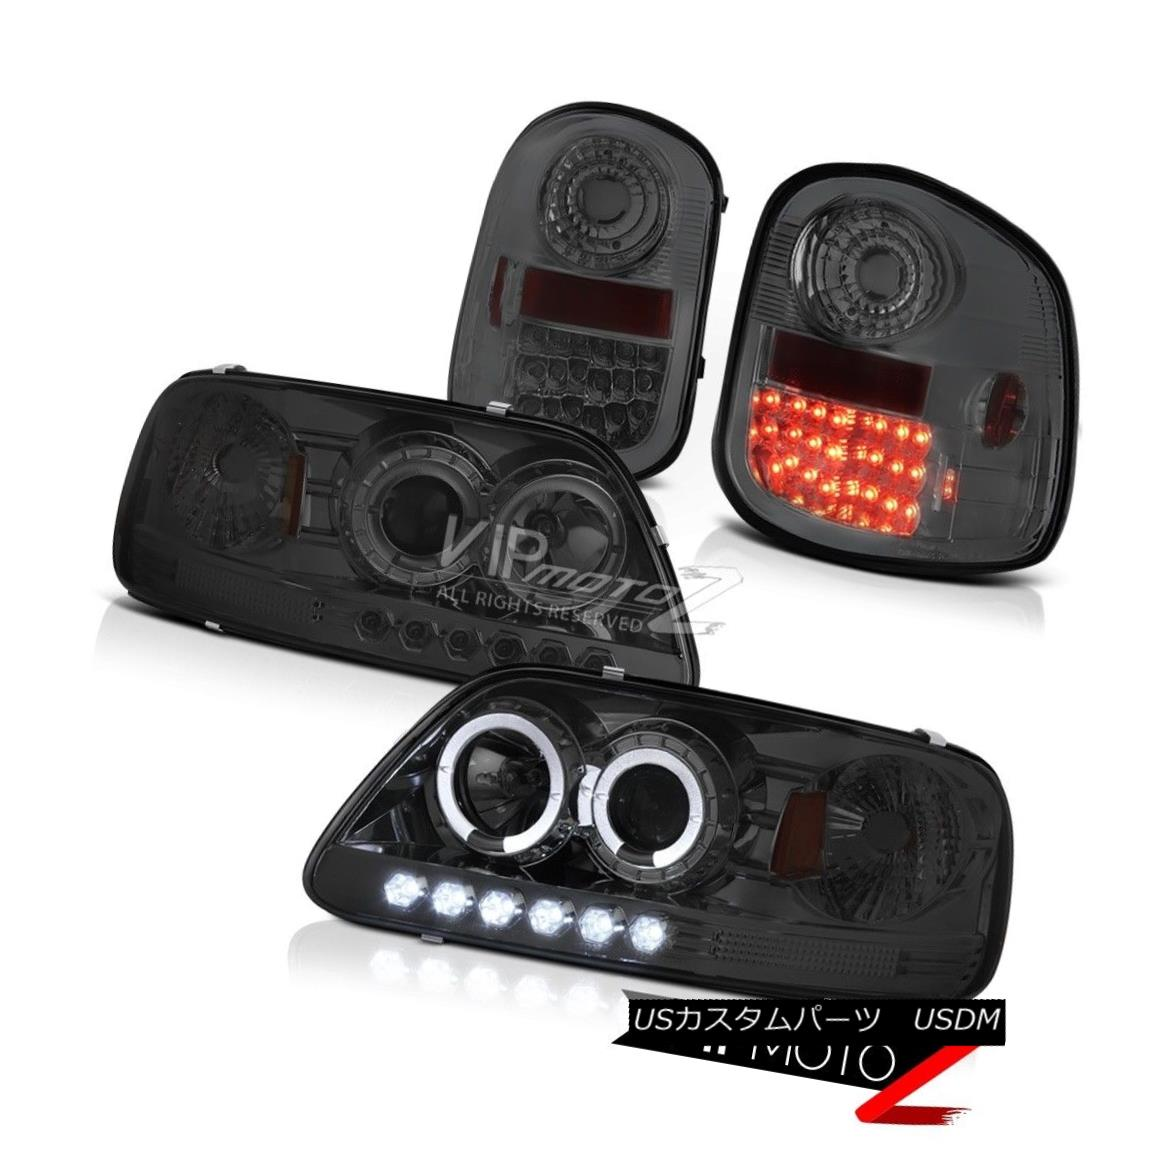 テールライト Angel Eye Headlamps L+R Tail Lights LED Tinted 1997-2003 Ford F150 Flareside XLT エンジェルアイヘッドランプL + RテールライトLEDテイスト1997-2003 Ford F150 Flareside XLT